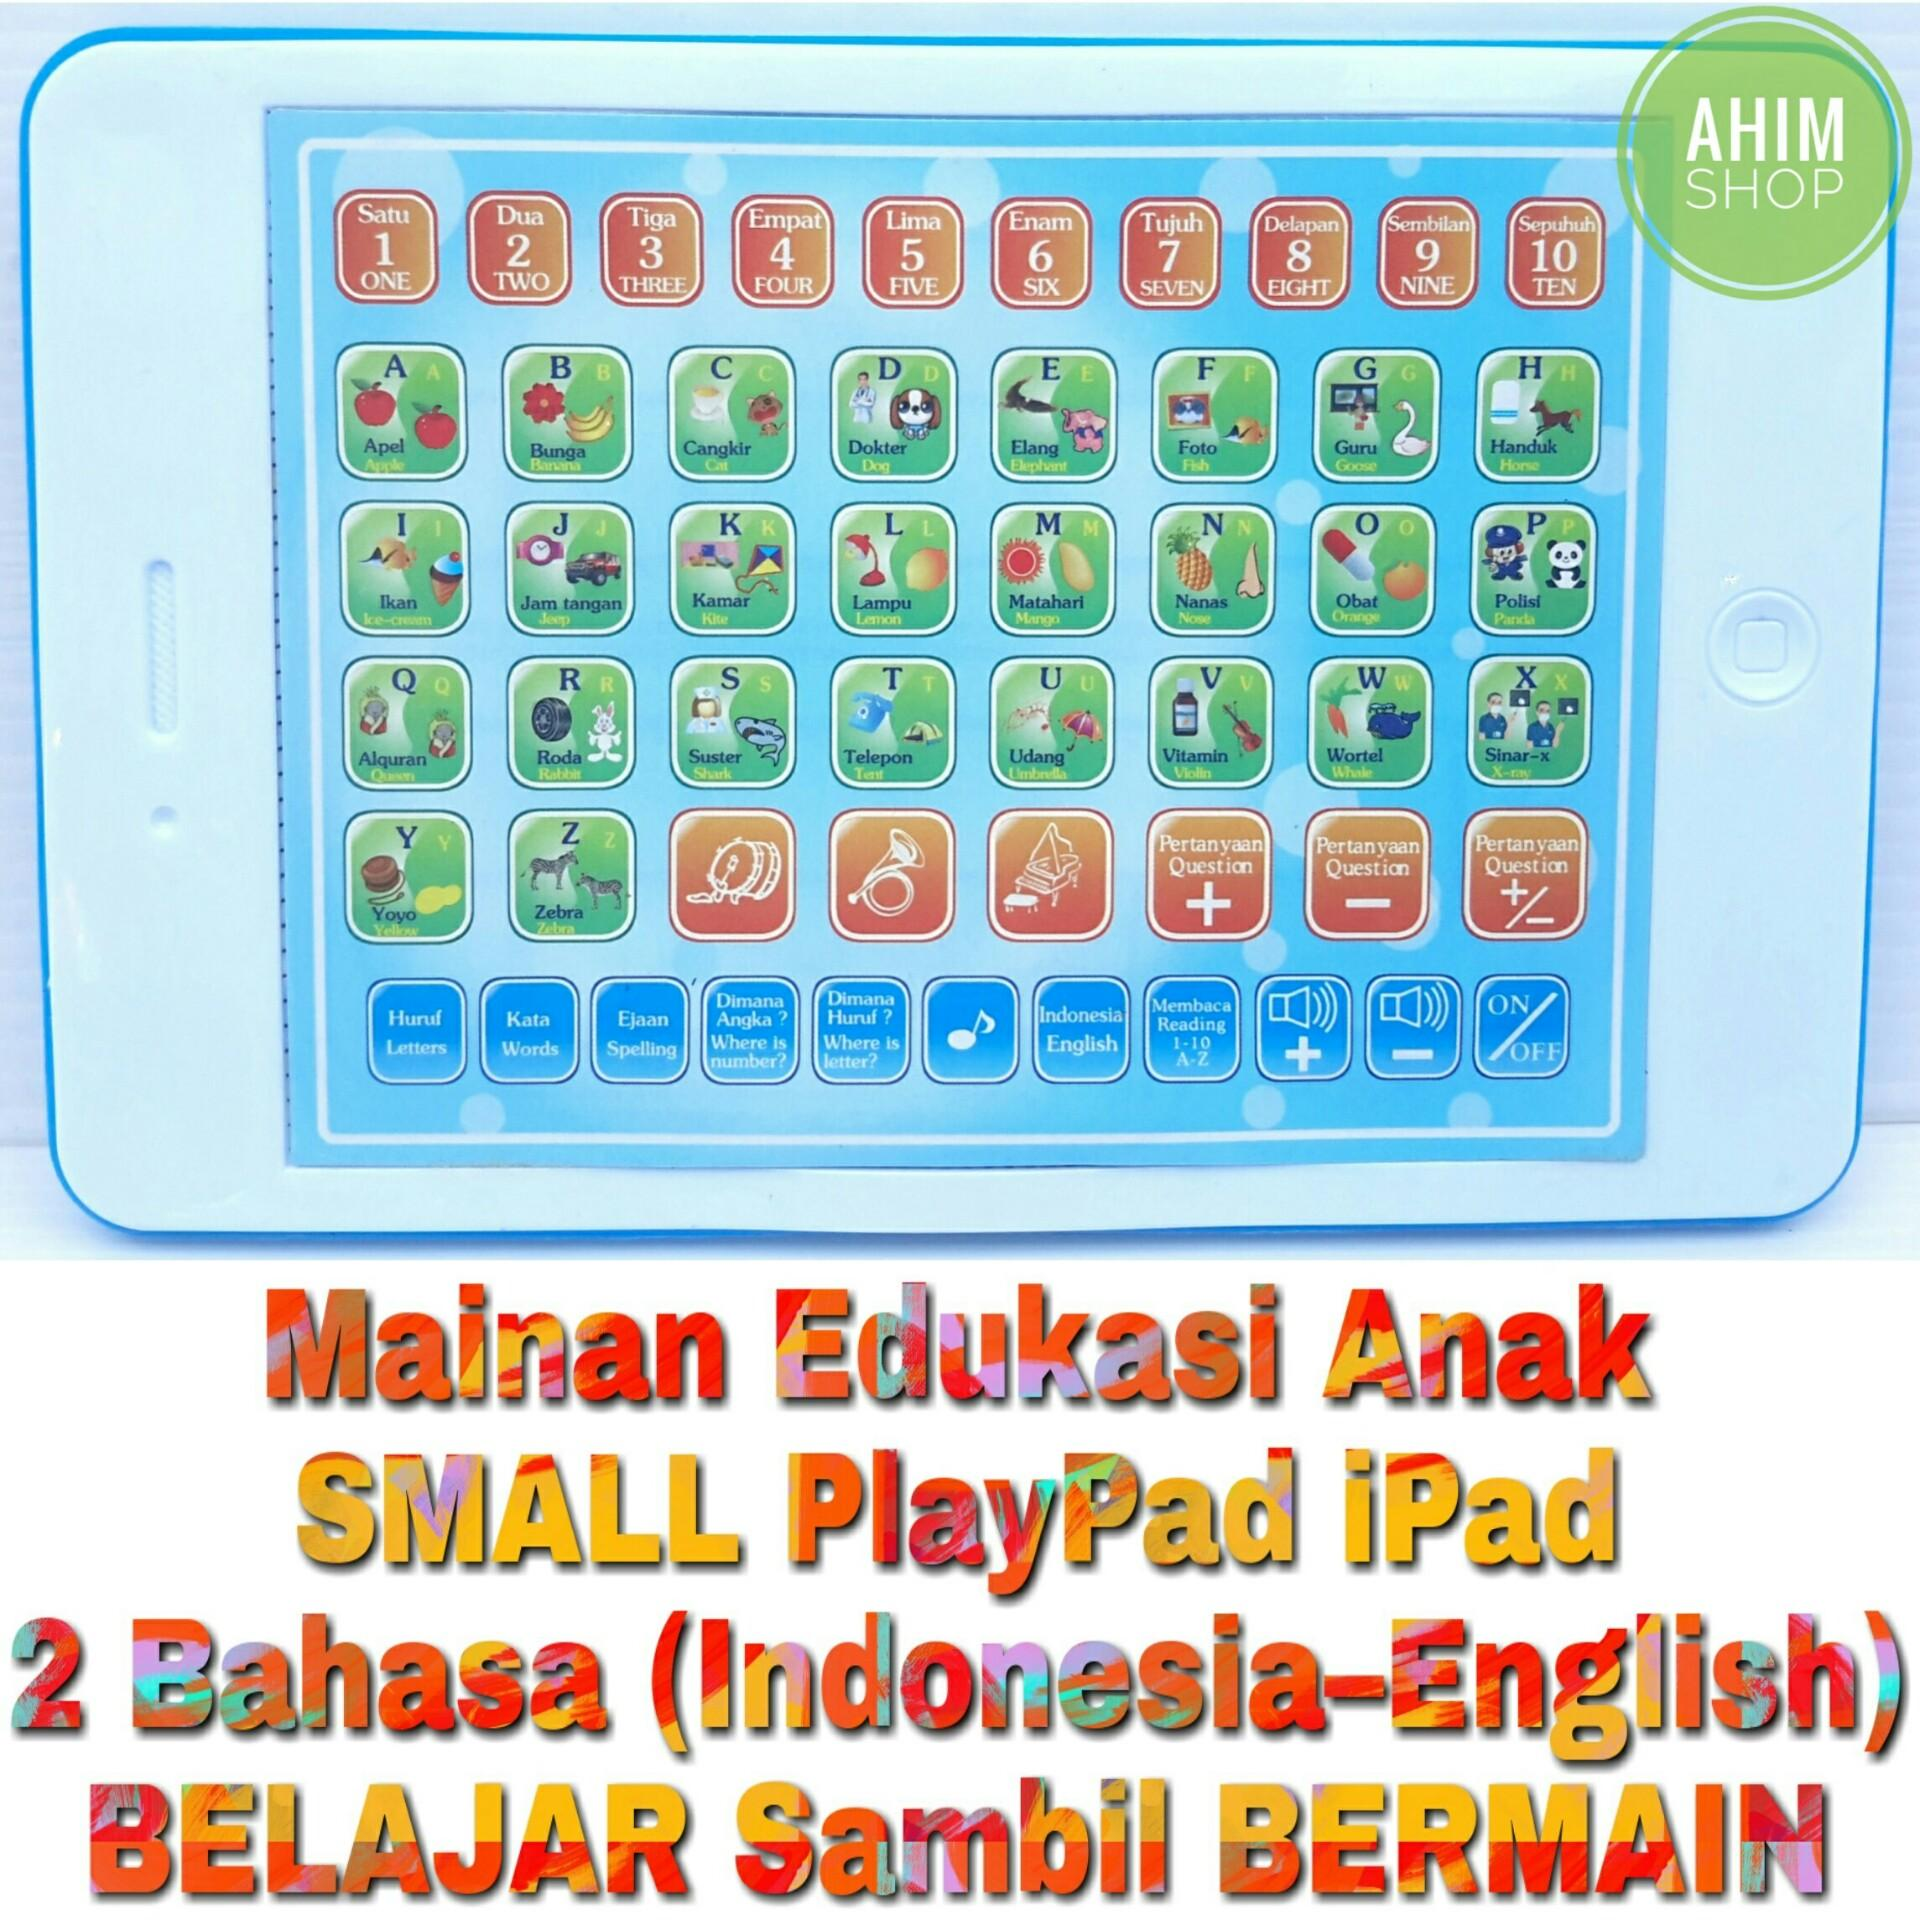 (White) Mainan Edukasi Anak 18 Fungsi SMALL PlayPad iPad 2 Bahasa (Indonesia- ...